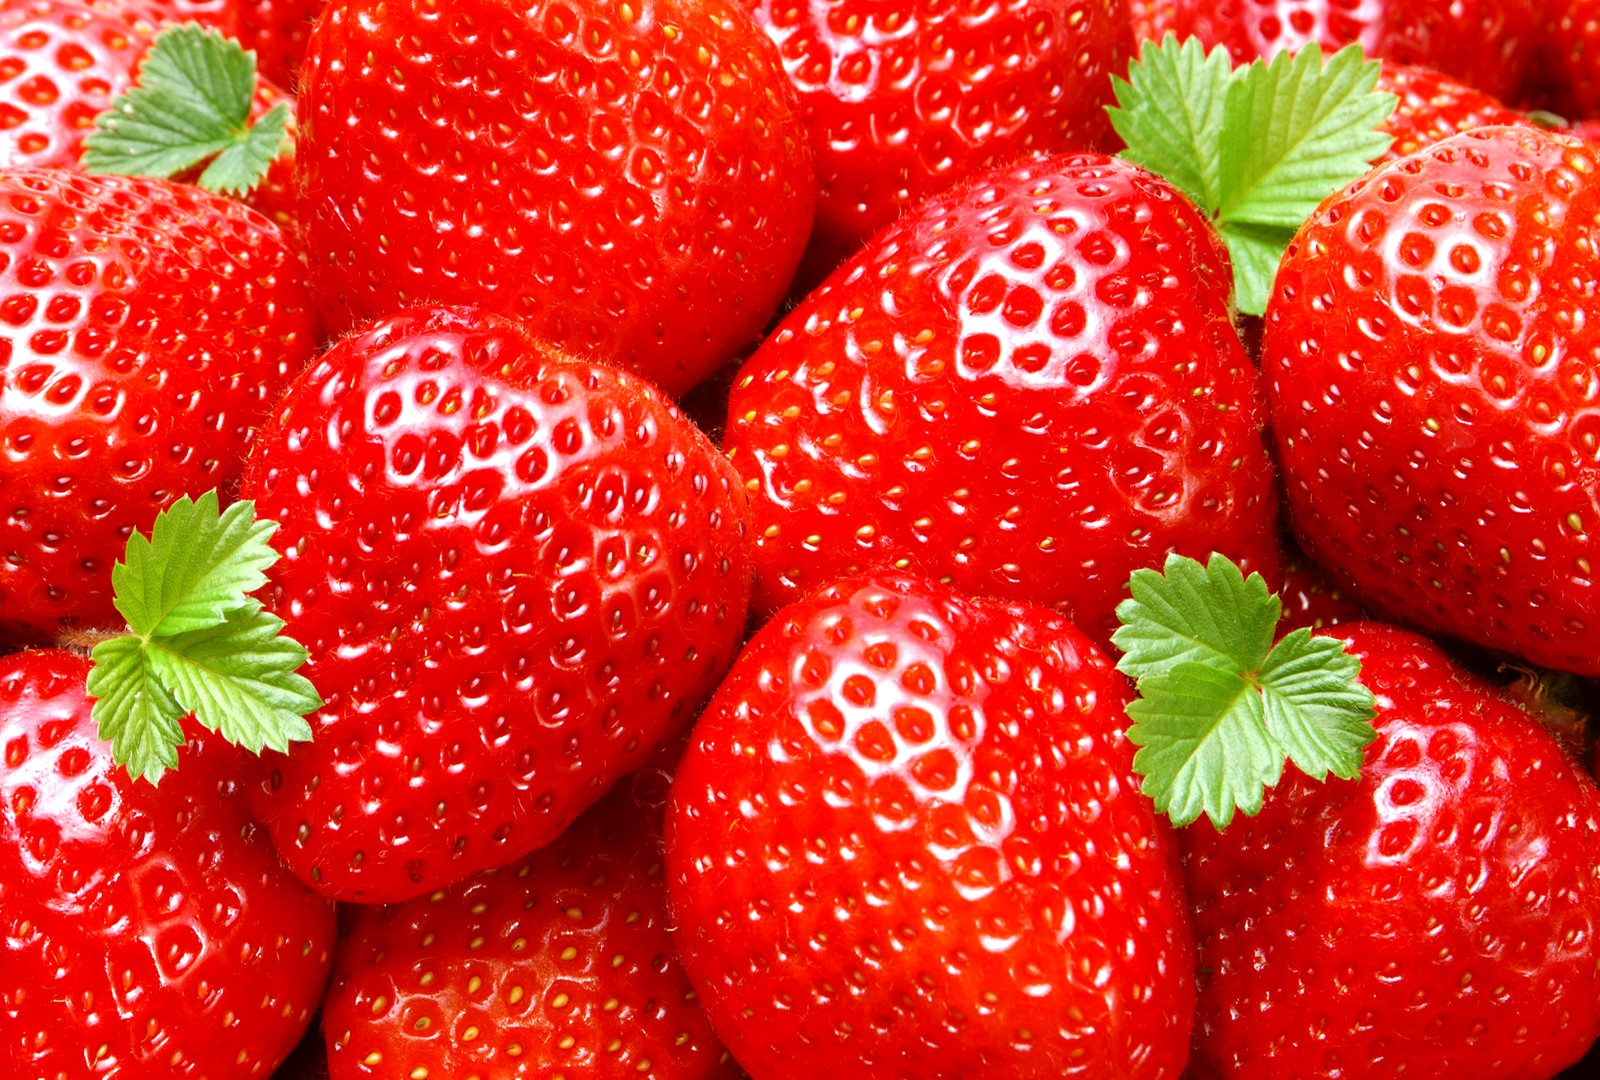 Strawberry Wallpapers High Quality  Download Free 1600x1080